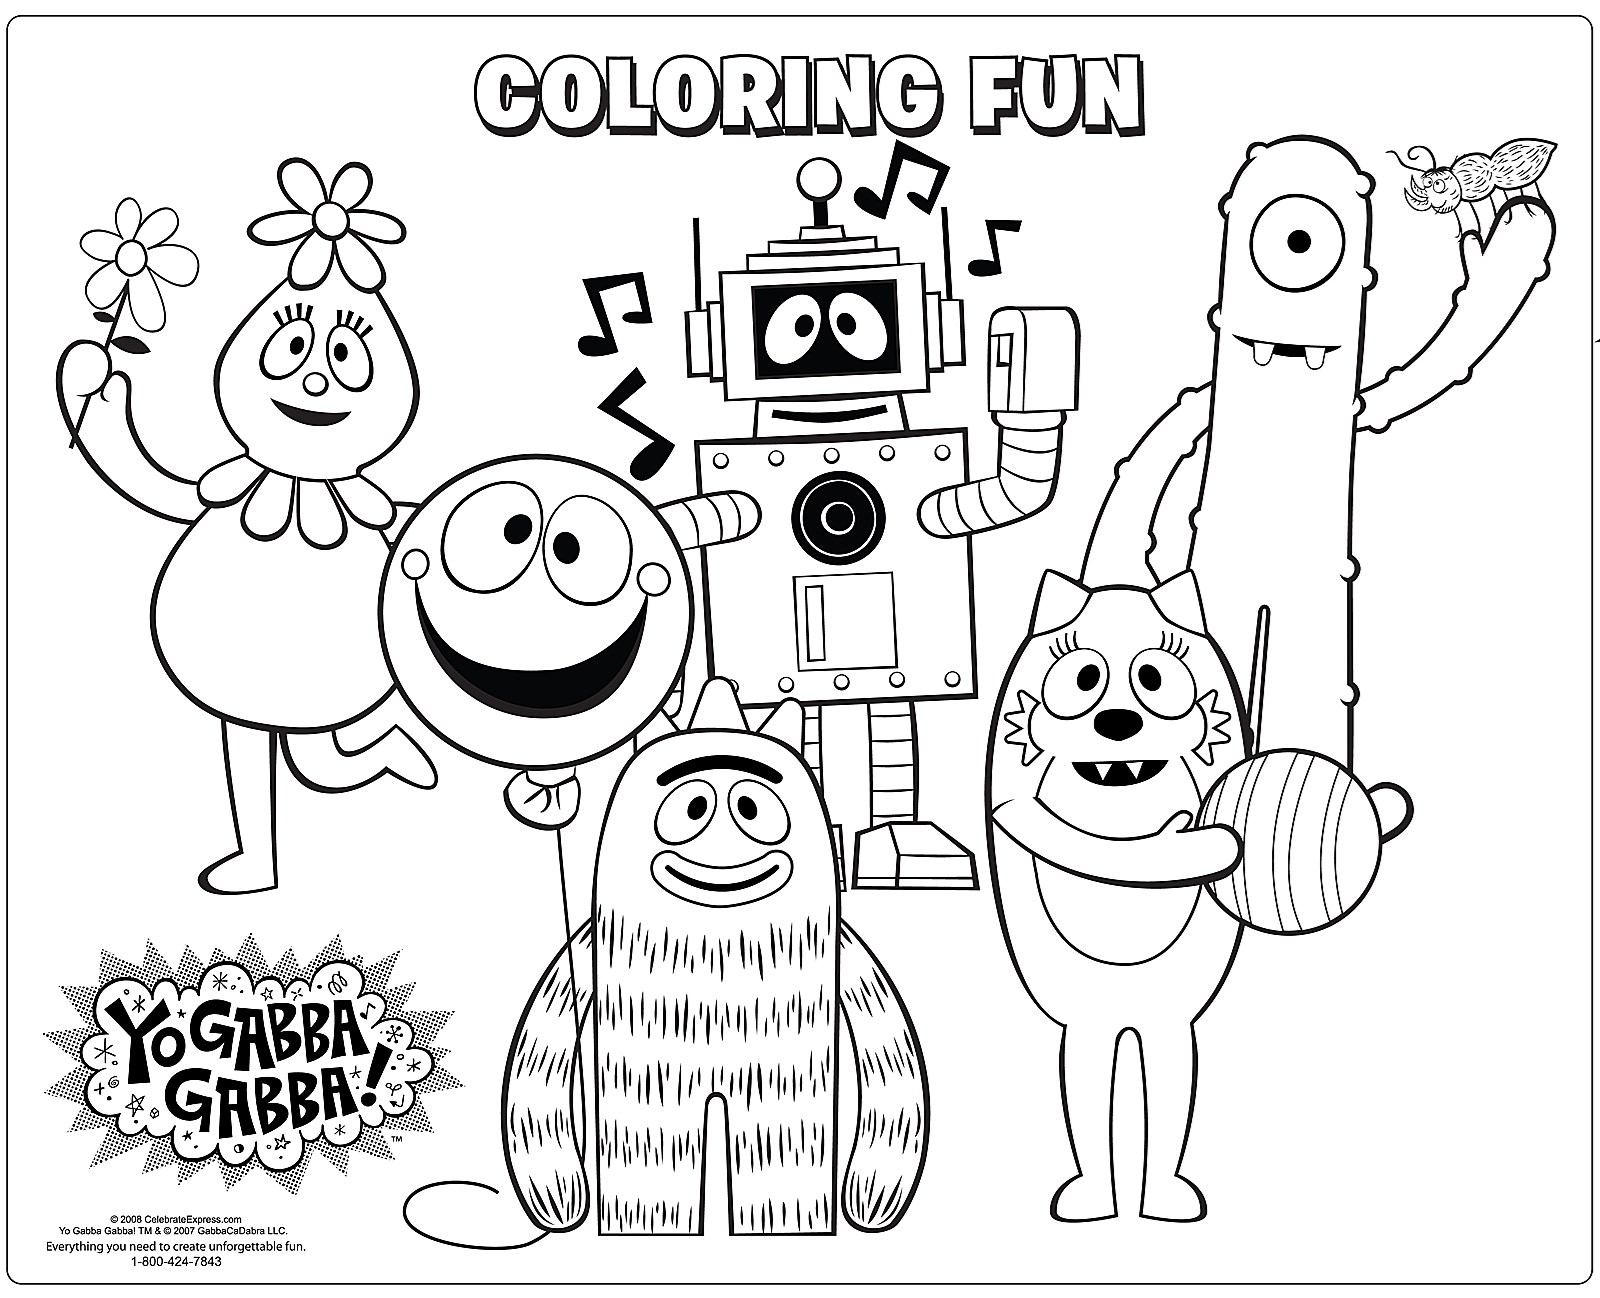 Coloring pages yo gabba gabba - Activity Placemats Alt Image 1 Yo Gabba Gabba Activity Placemats